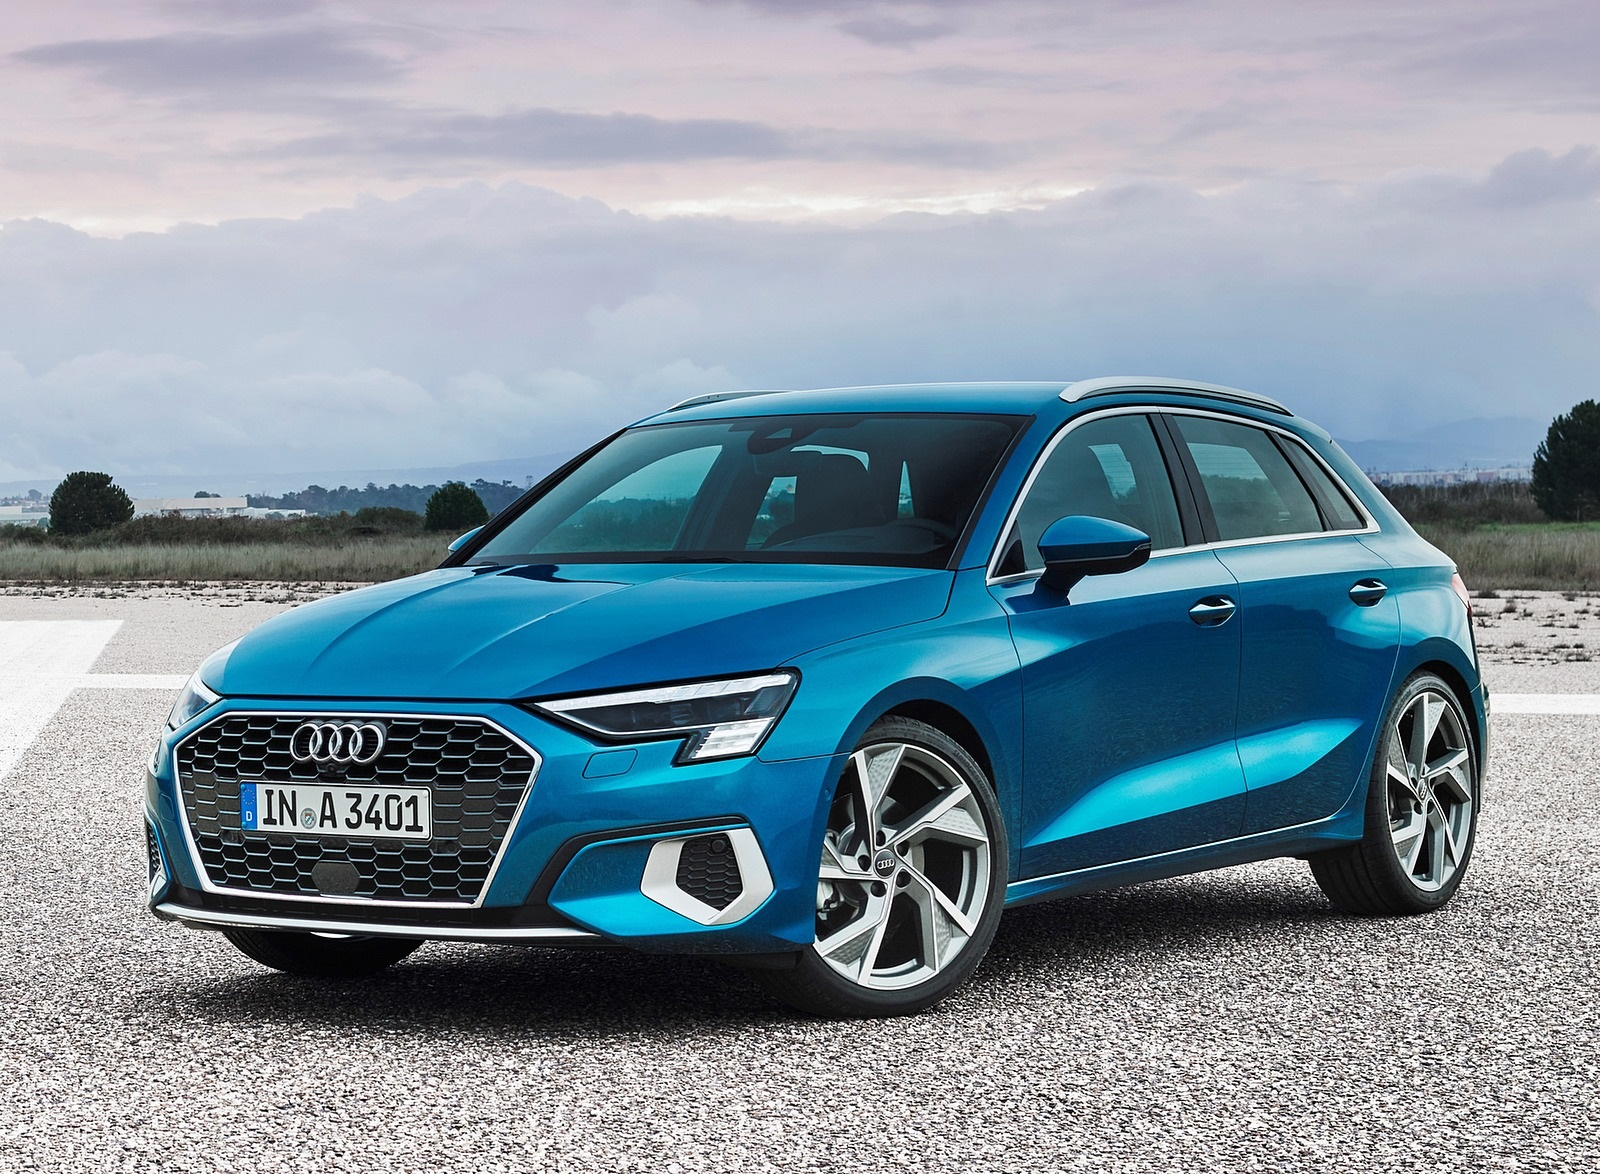 2021 Audi A3 Sportback (Color: Atoll Blue) Front Three-Quarter Wallpapers (7)